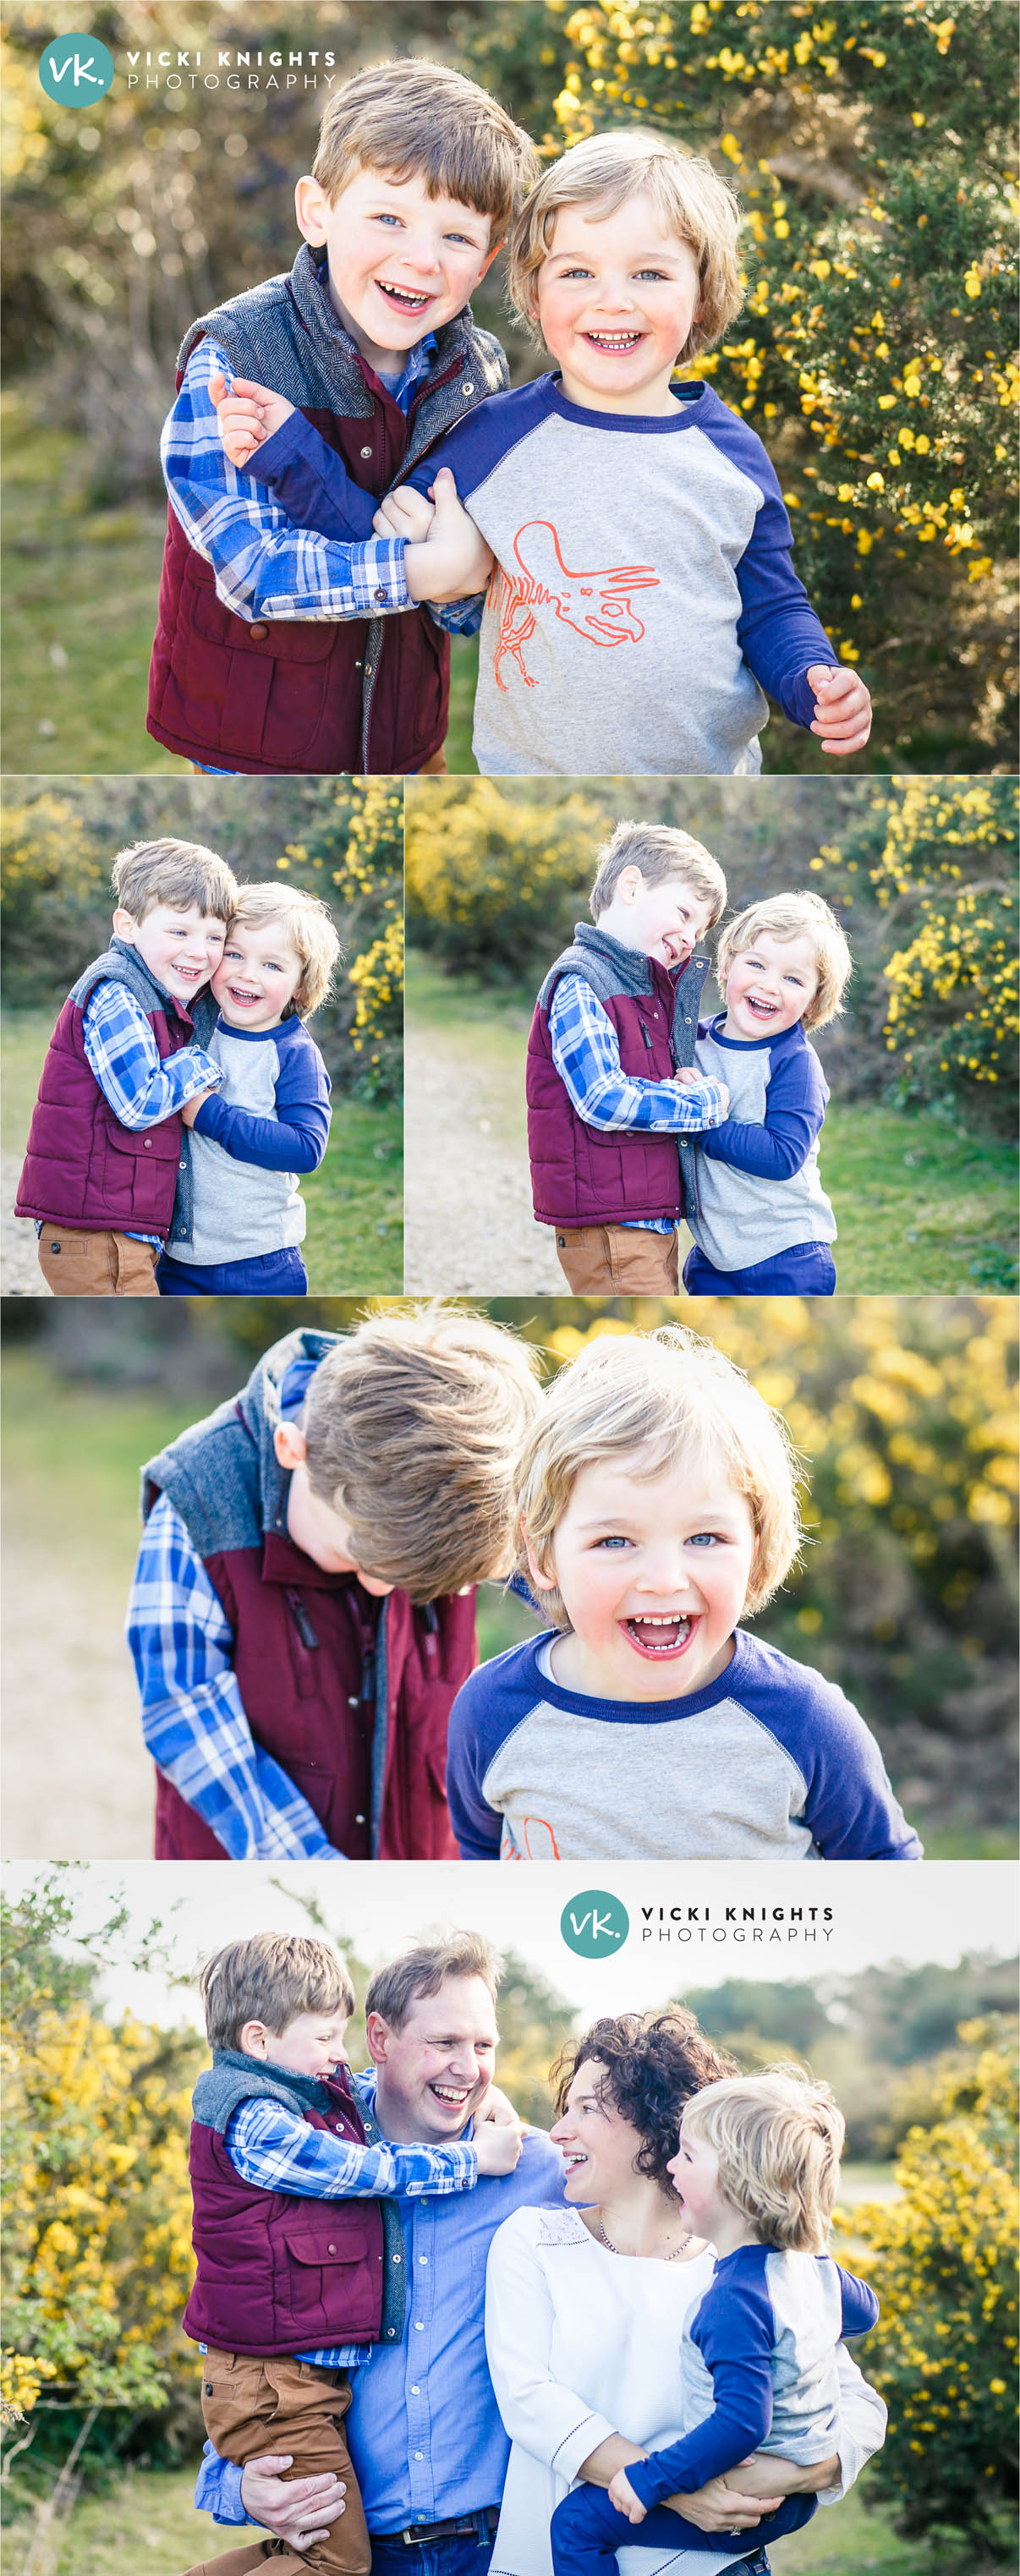 farnham-family-photography-vkp